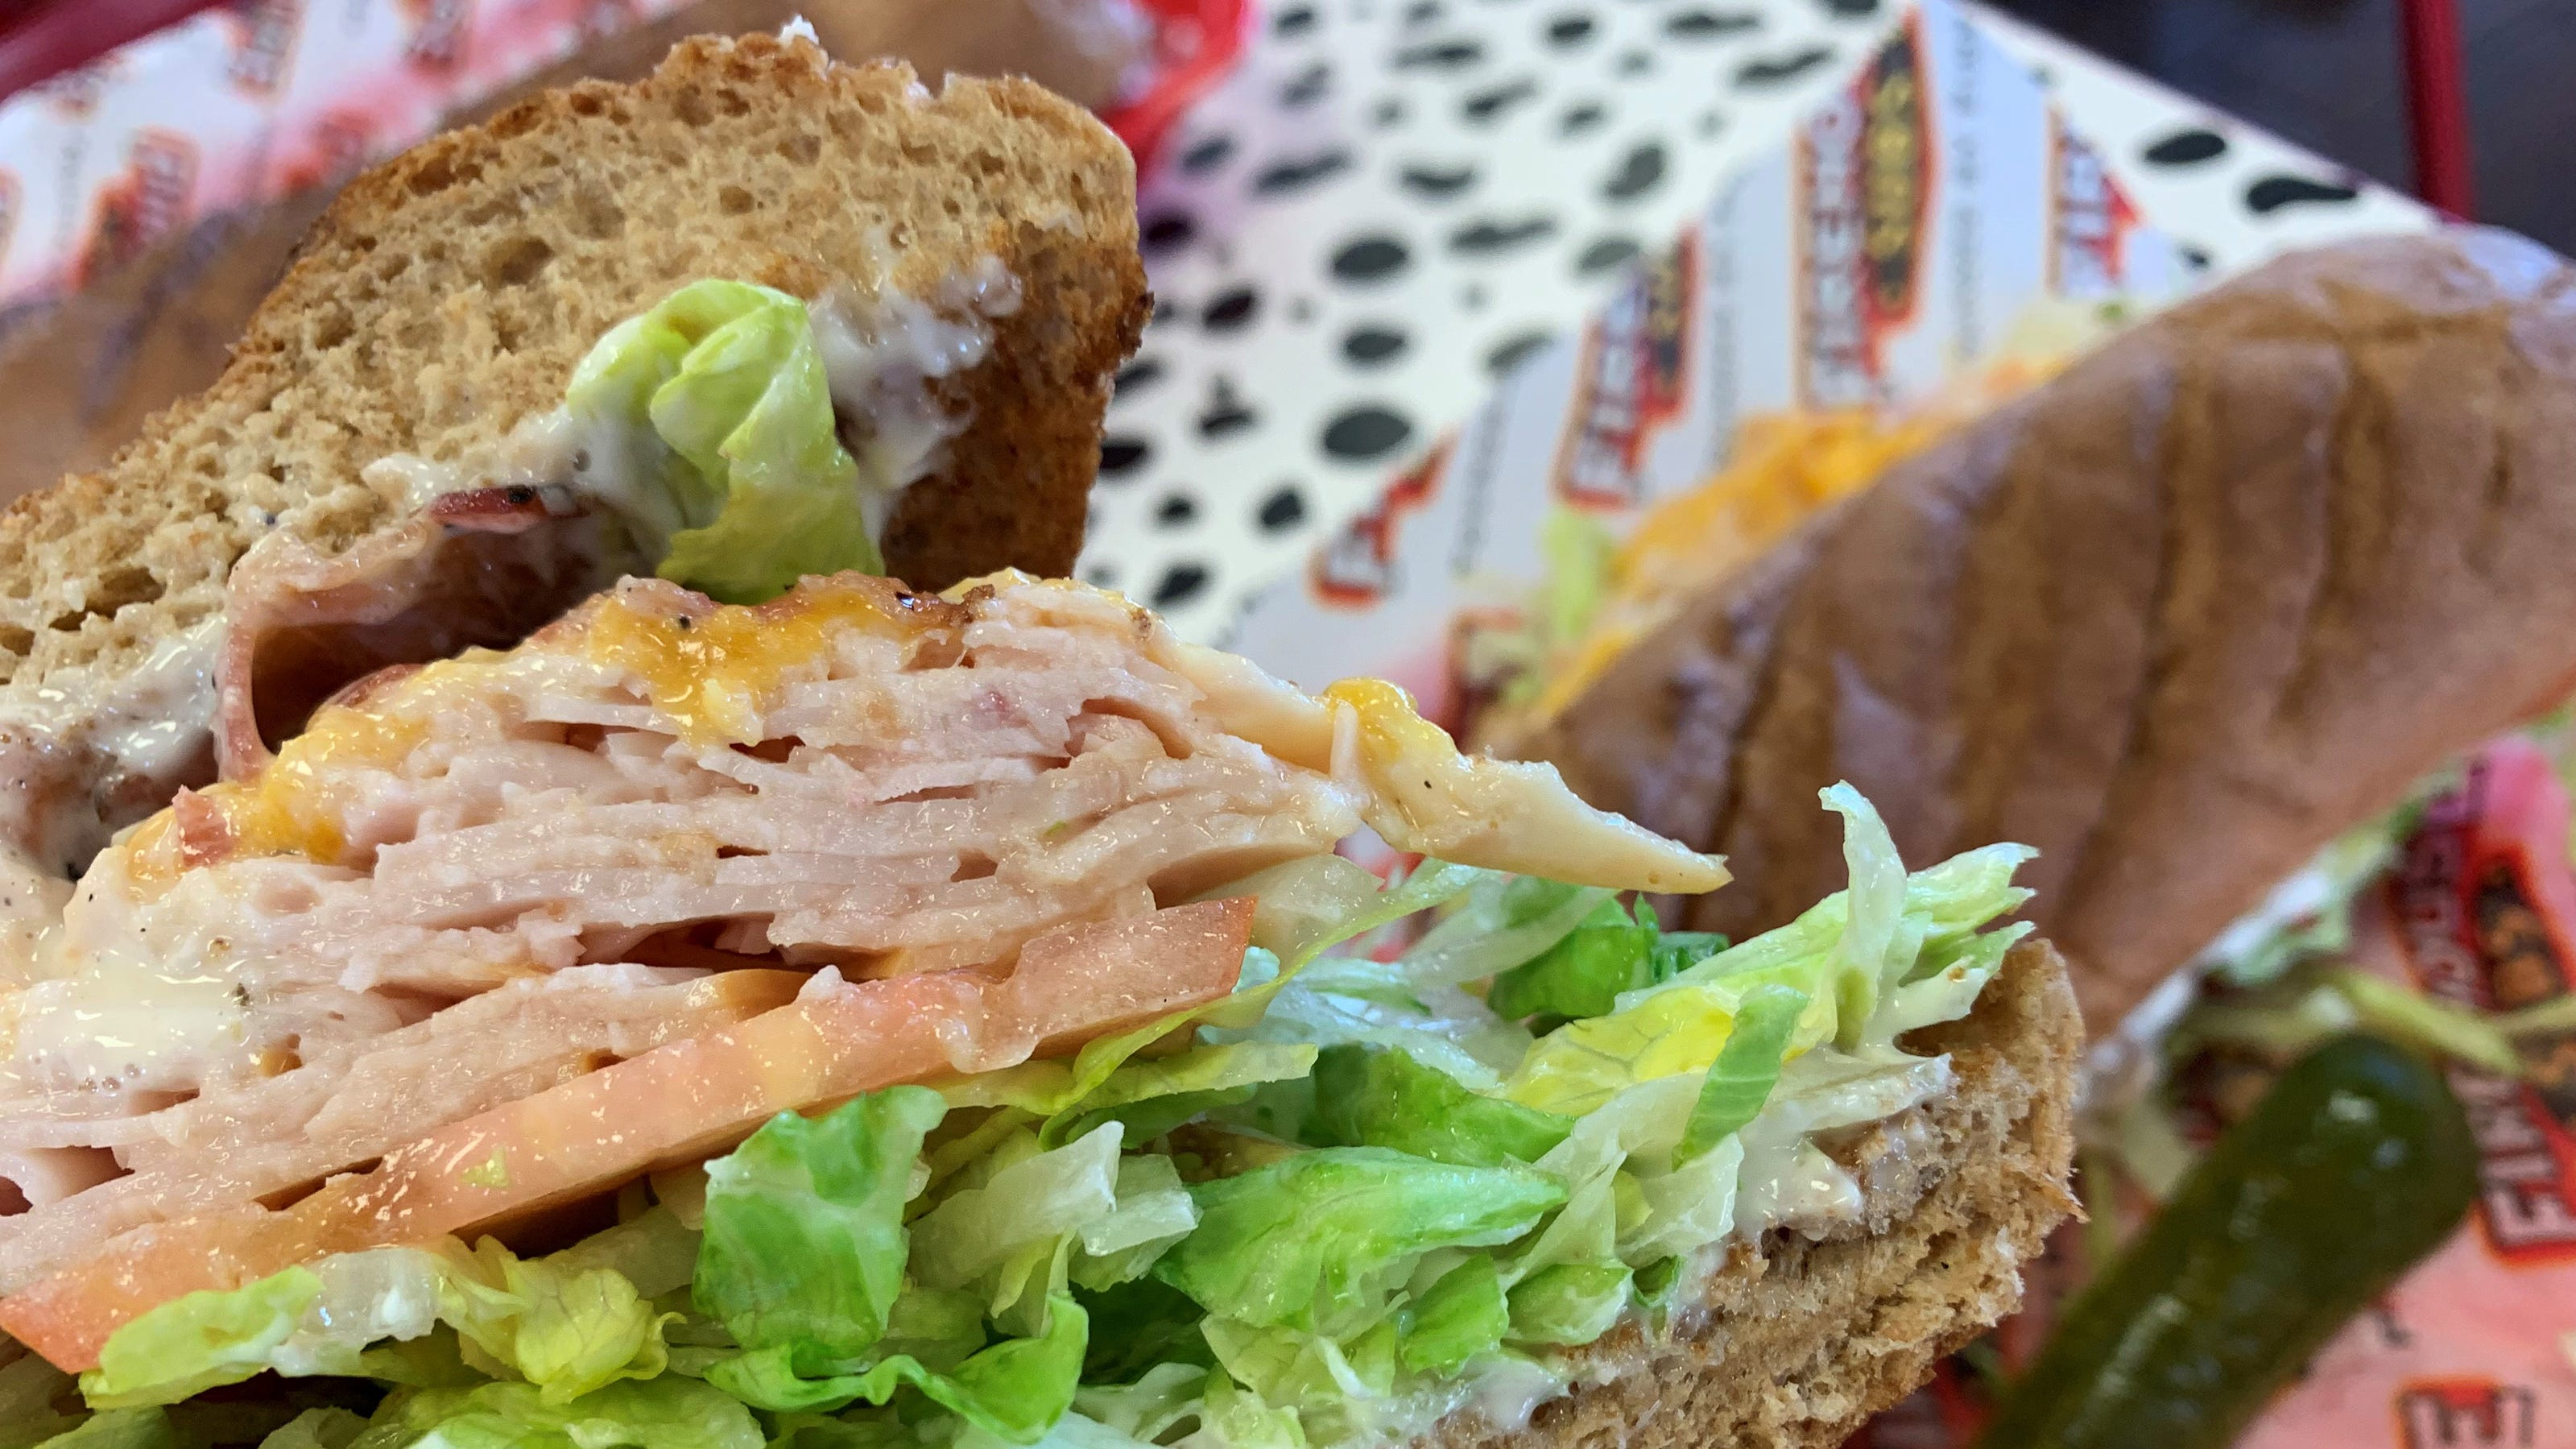 The turkey bacon ranch from Firehouse Subs, Naples.